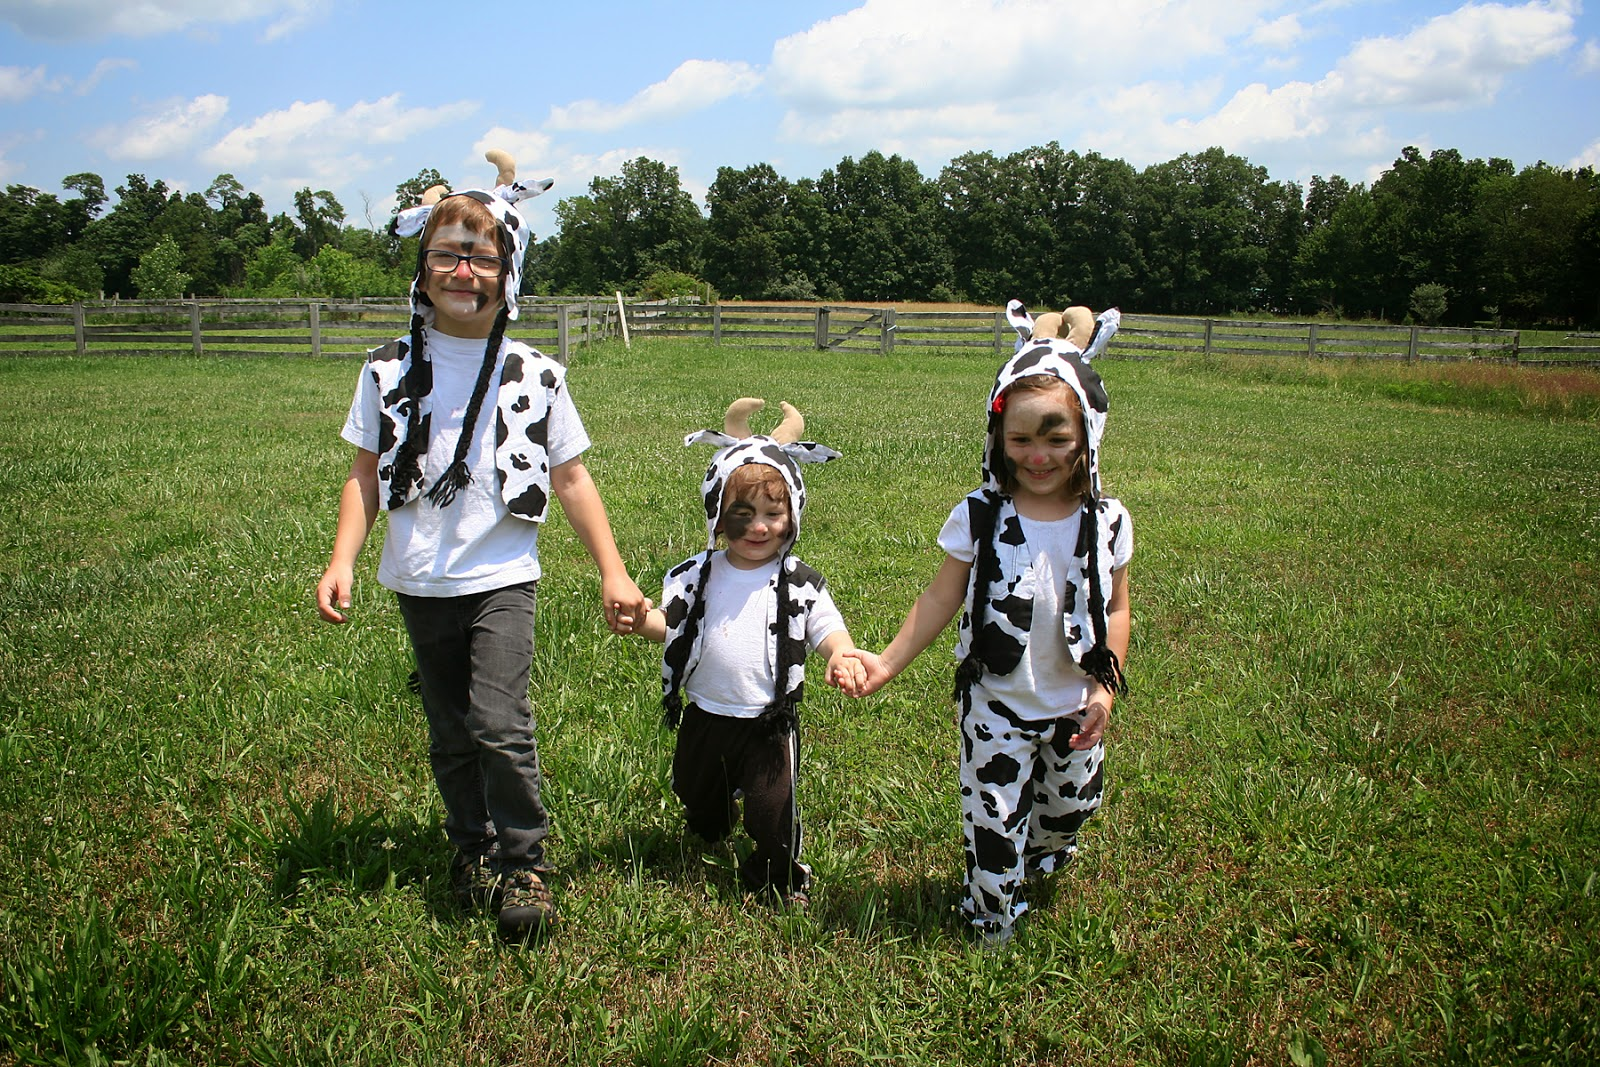 Our 5th Annual Cow Day